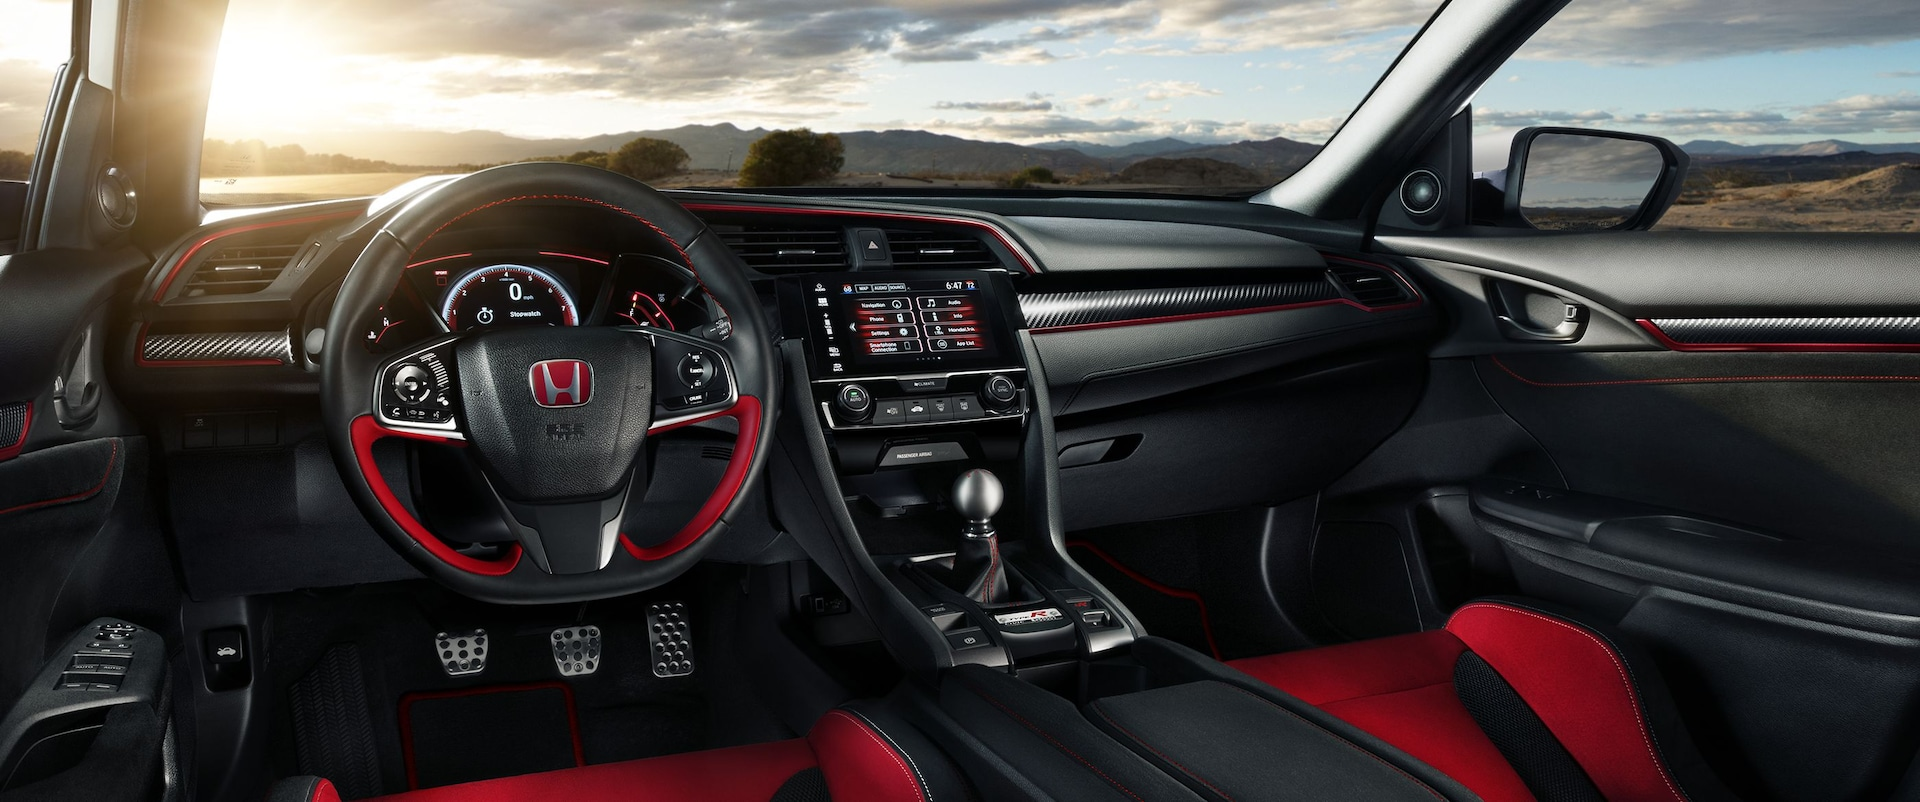 Ordinaire The Interior Is Typical FC/FK Honda Civic Fare, Save For All New  Racing Style Front Bucket Seats, Alcantara Faux Suede Inserts Along The  Interior Touchpoint ...